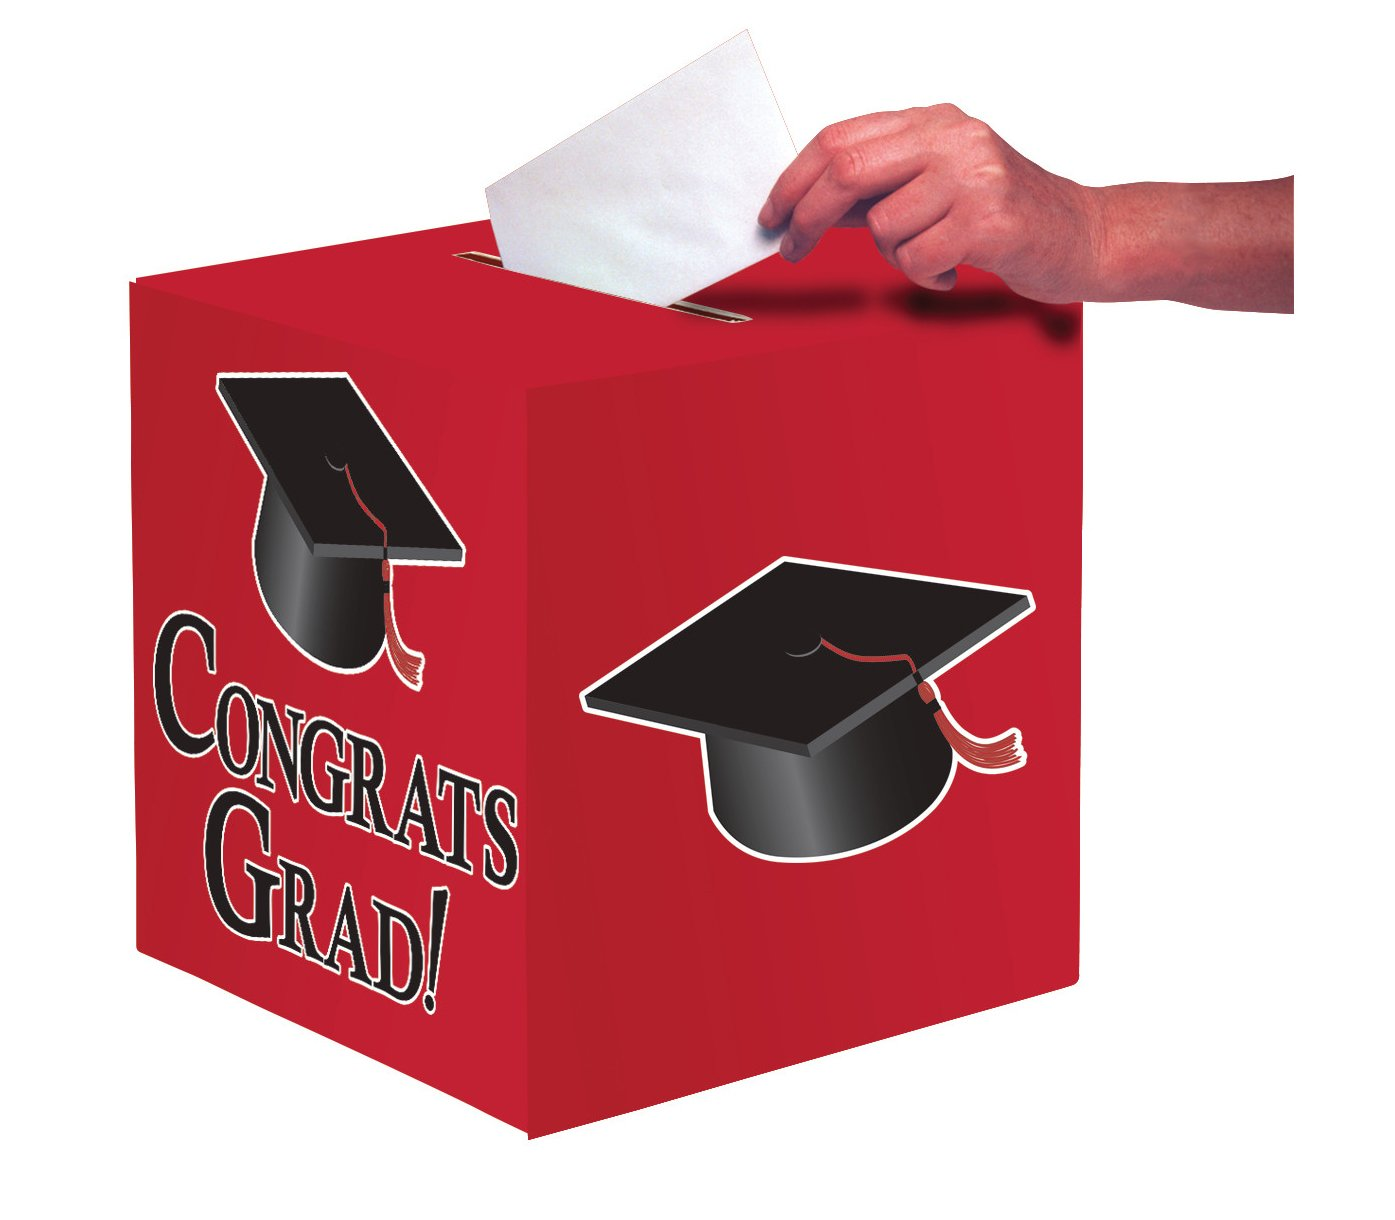 Creative Converting Congrats Grad Card Holder Box, Classic Red - 083311